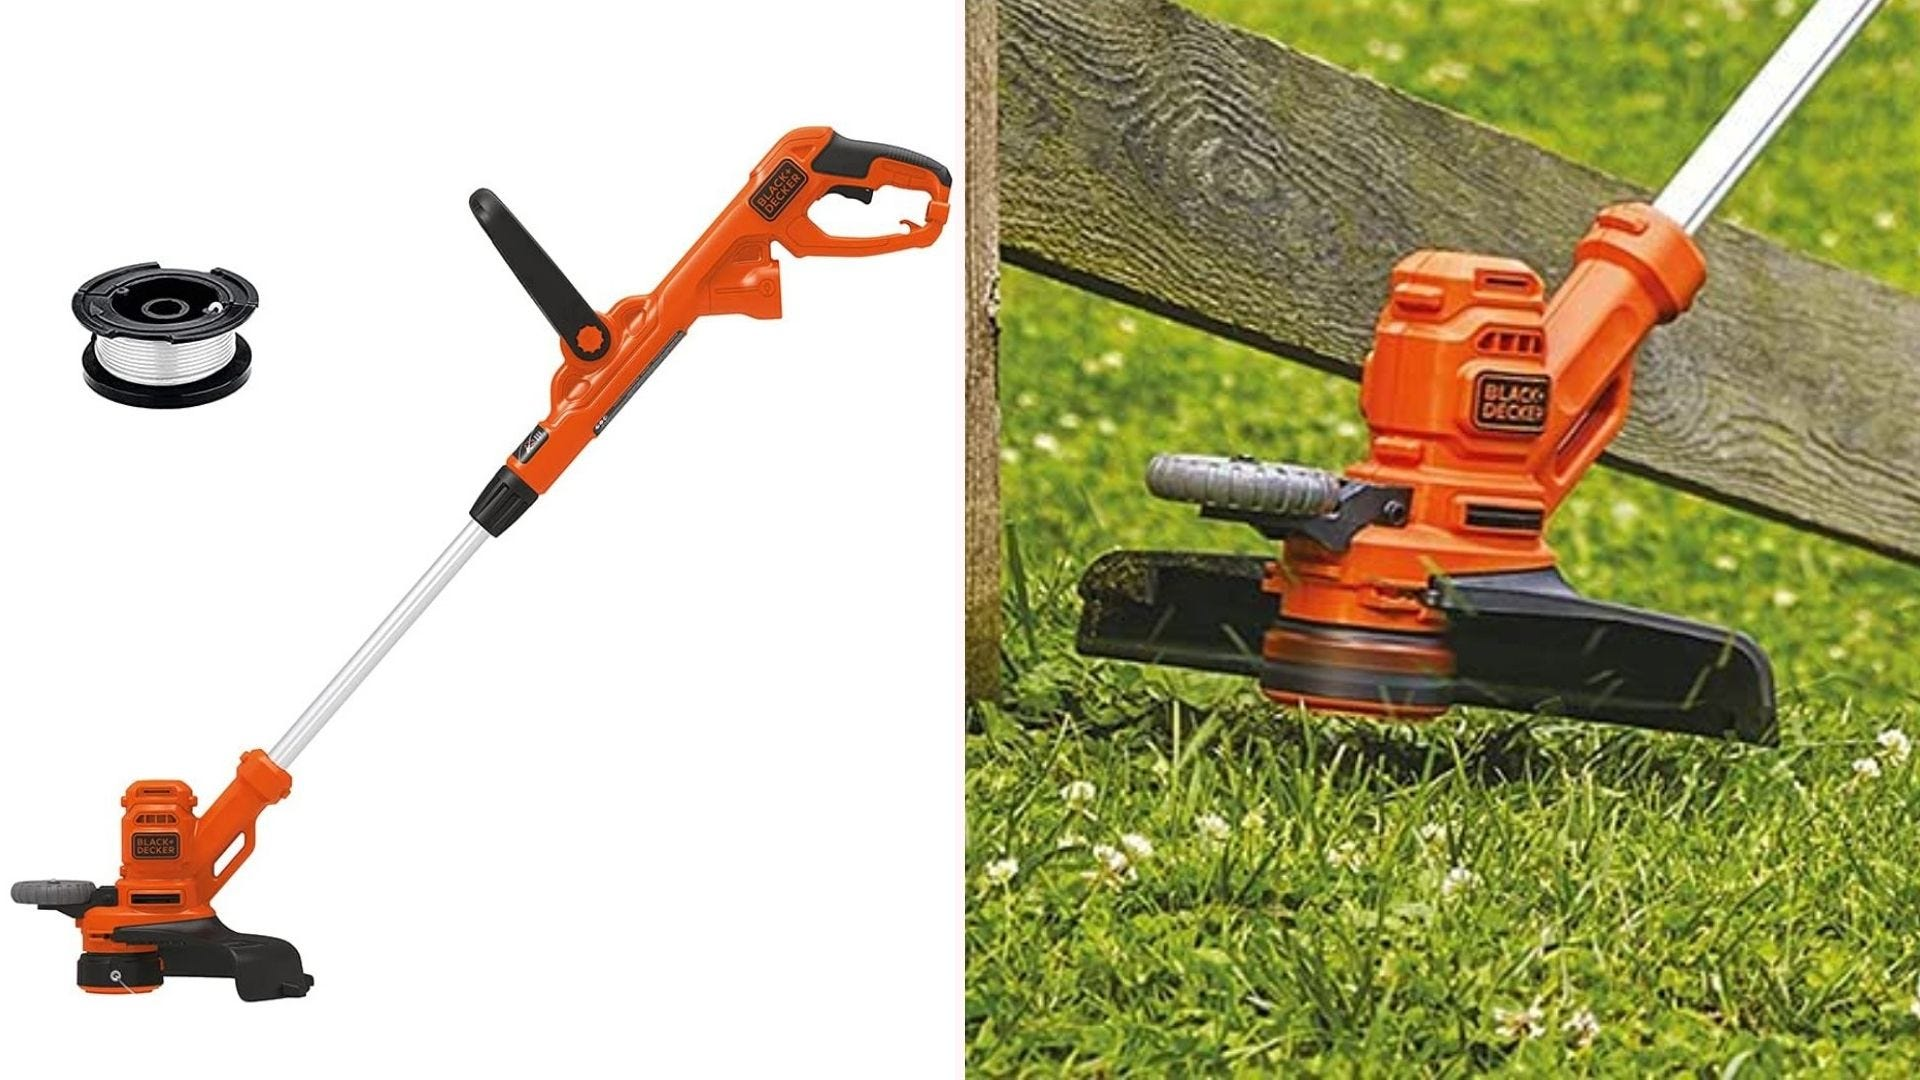 On the left, an orange trimmer with a spool of thread. On the right, a close up of the string spinner cutting grass.